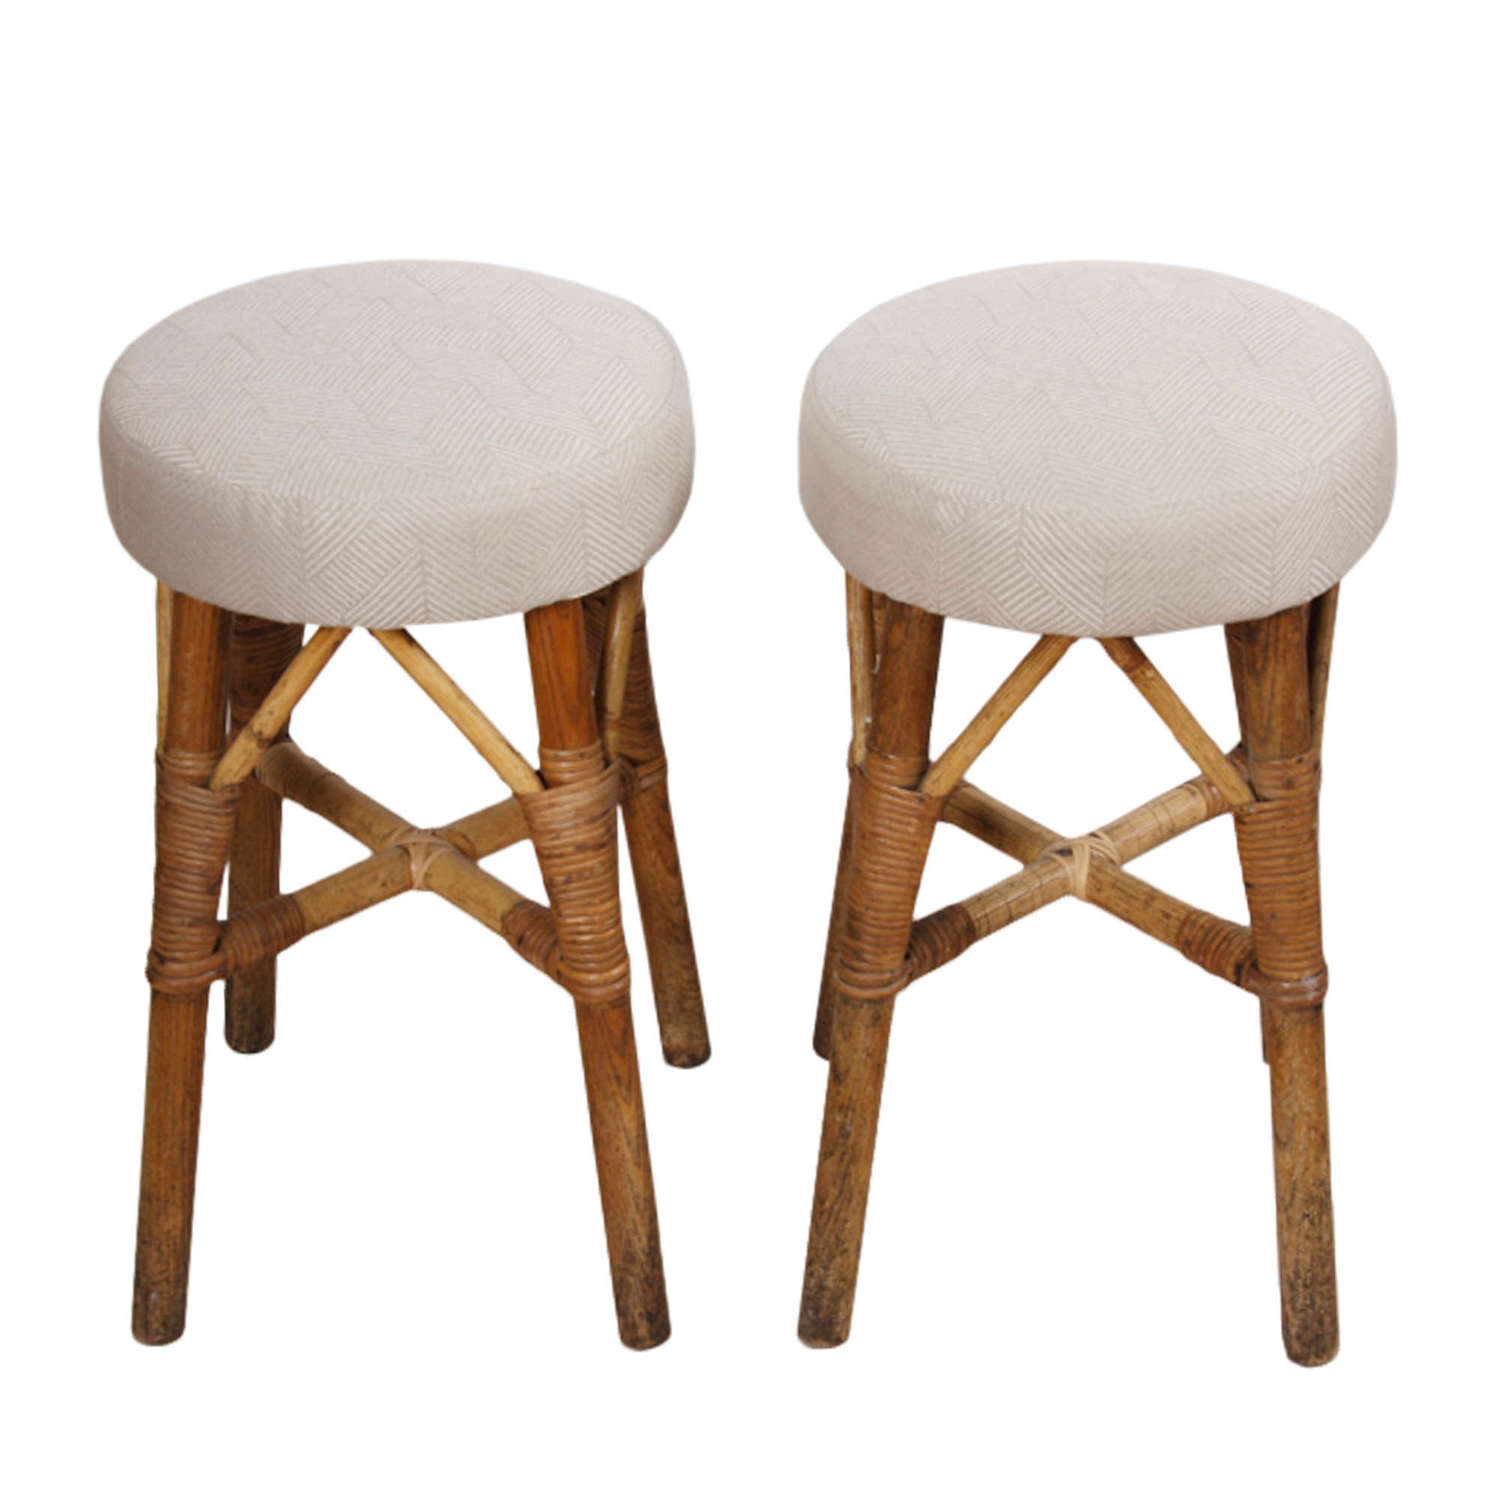 Pair of French 1920s Wood and Cane Upholstered Stools